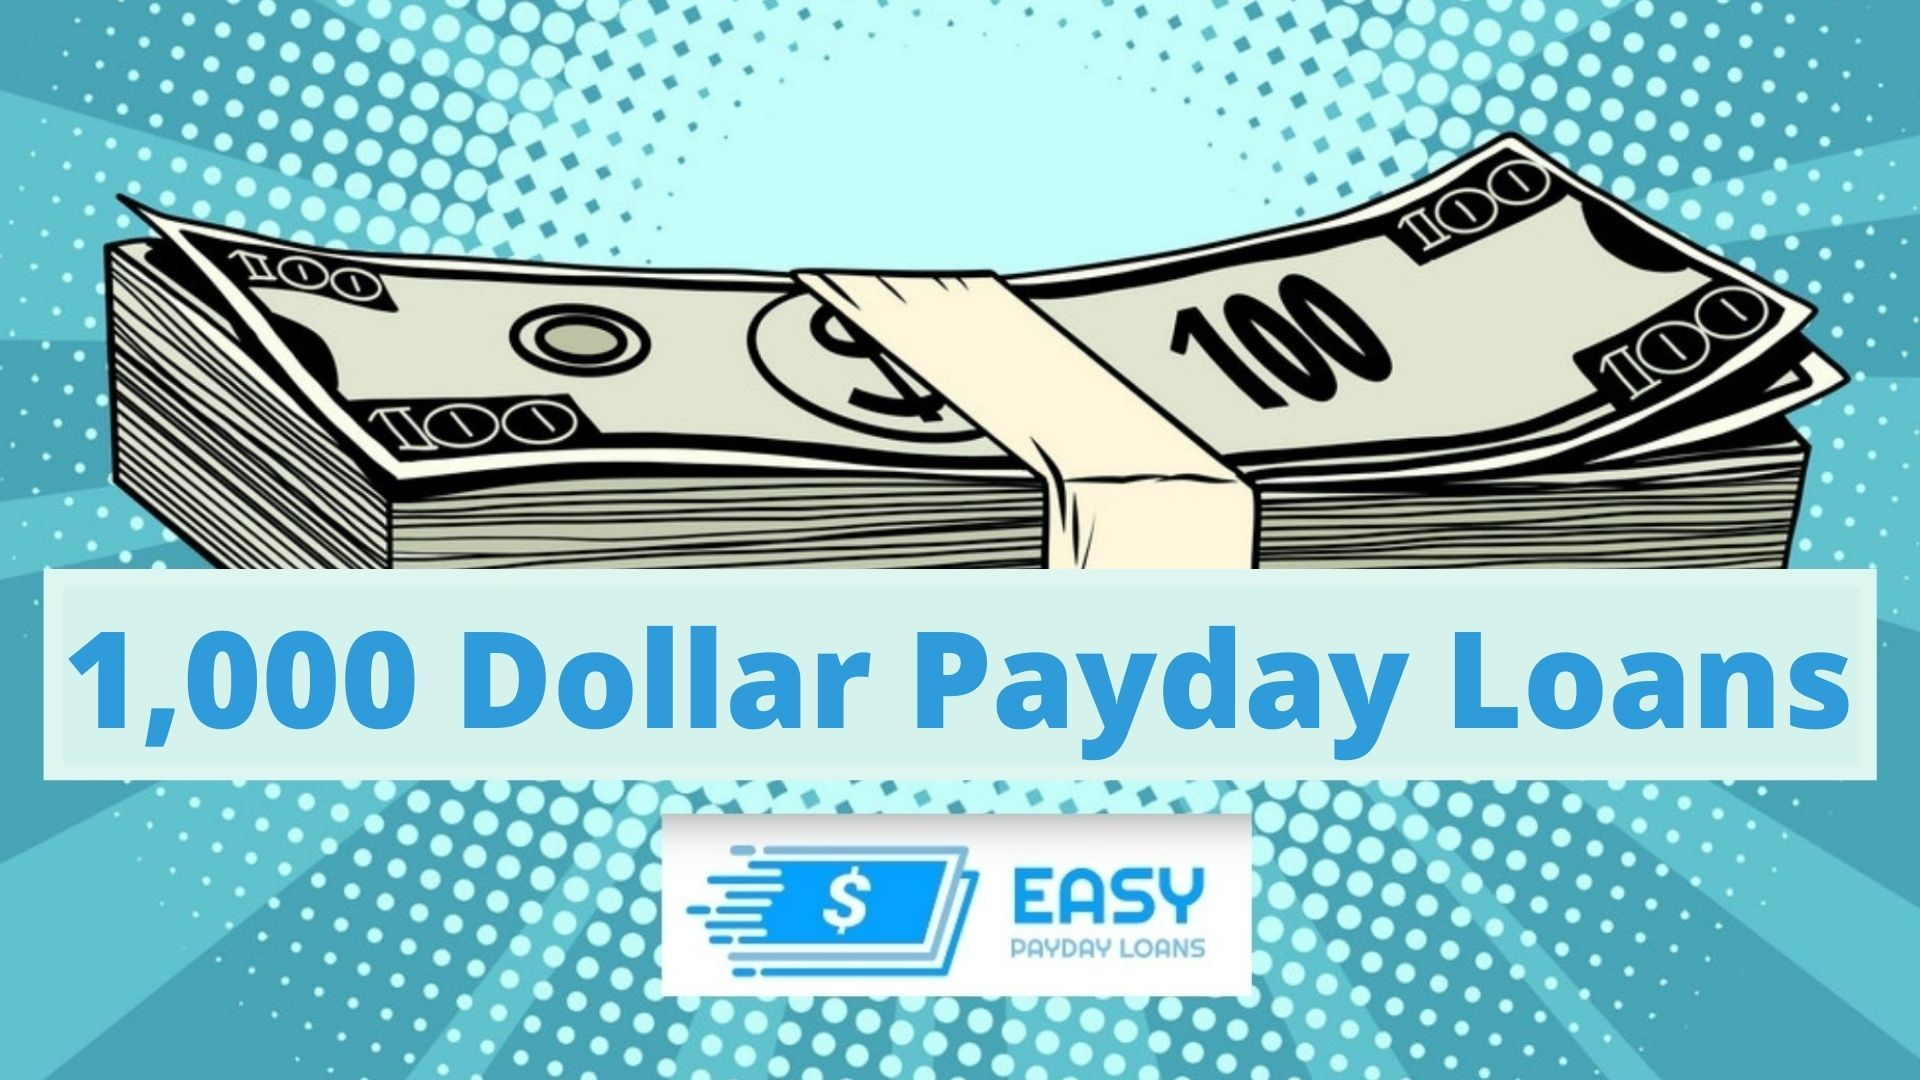 $1,000 Payday Loan